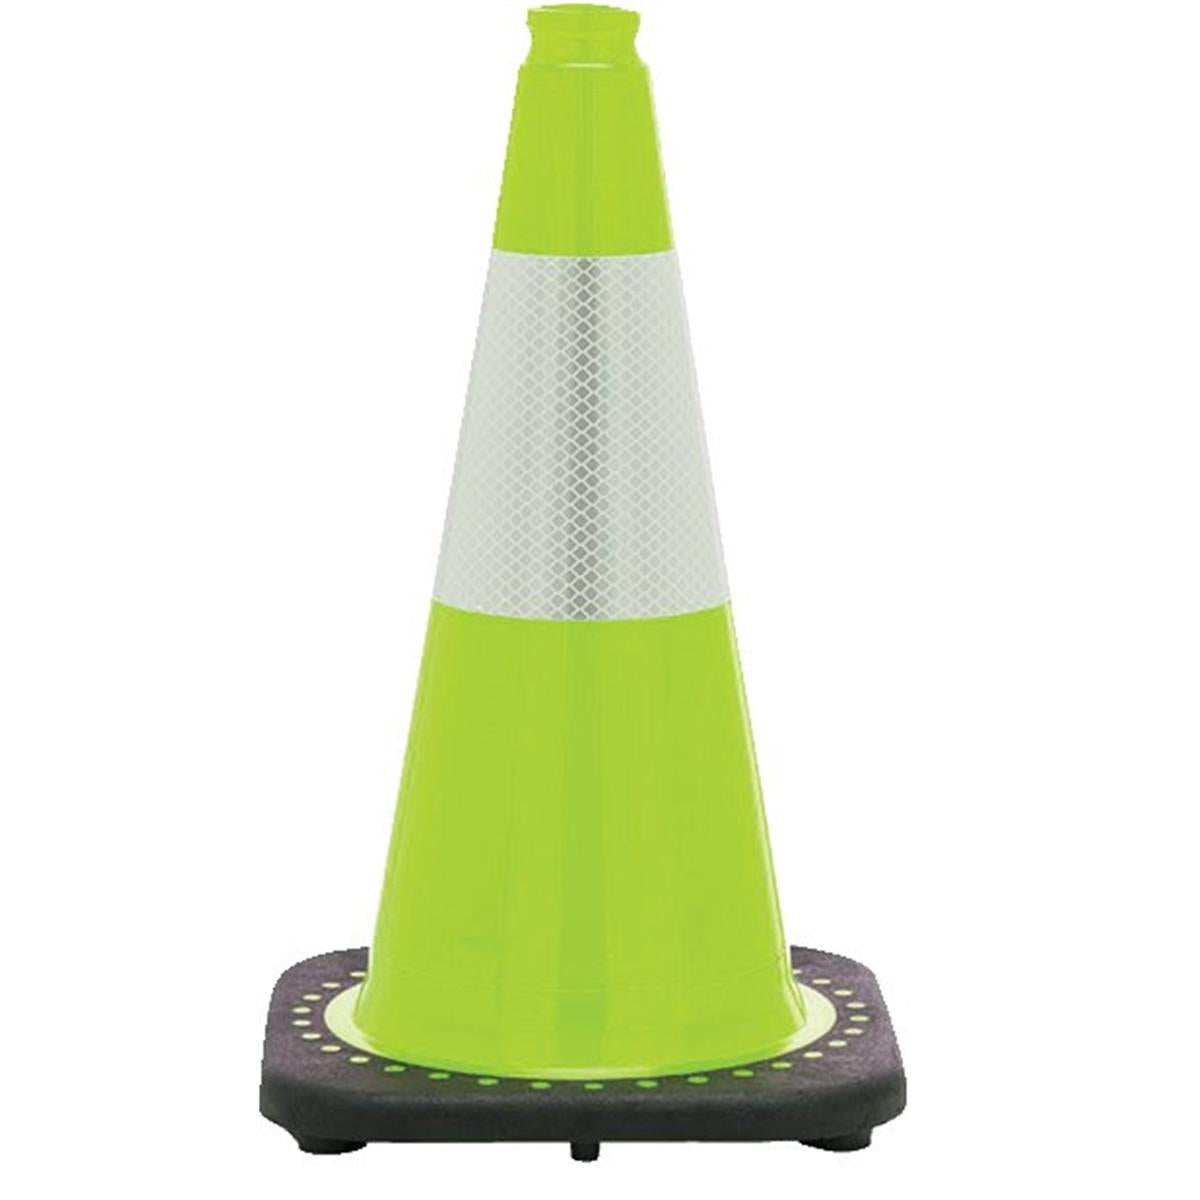 "Revolution Series 18"" Reflective Traffic Cones"